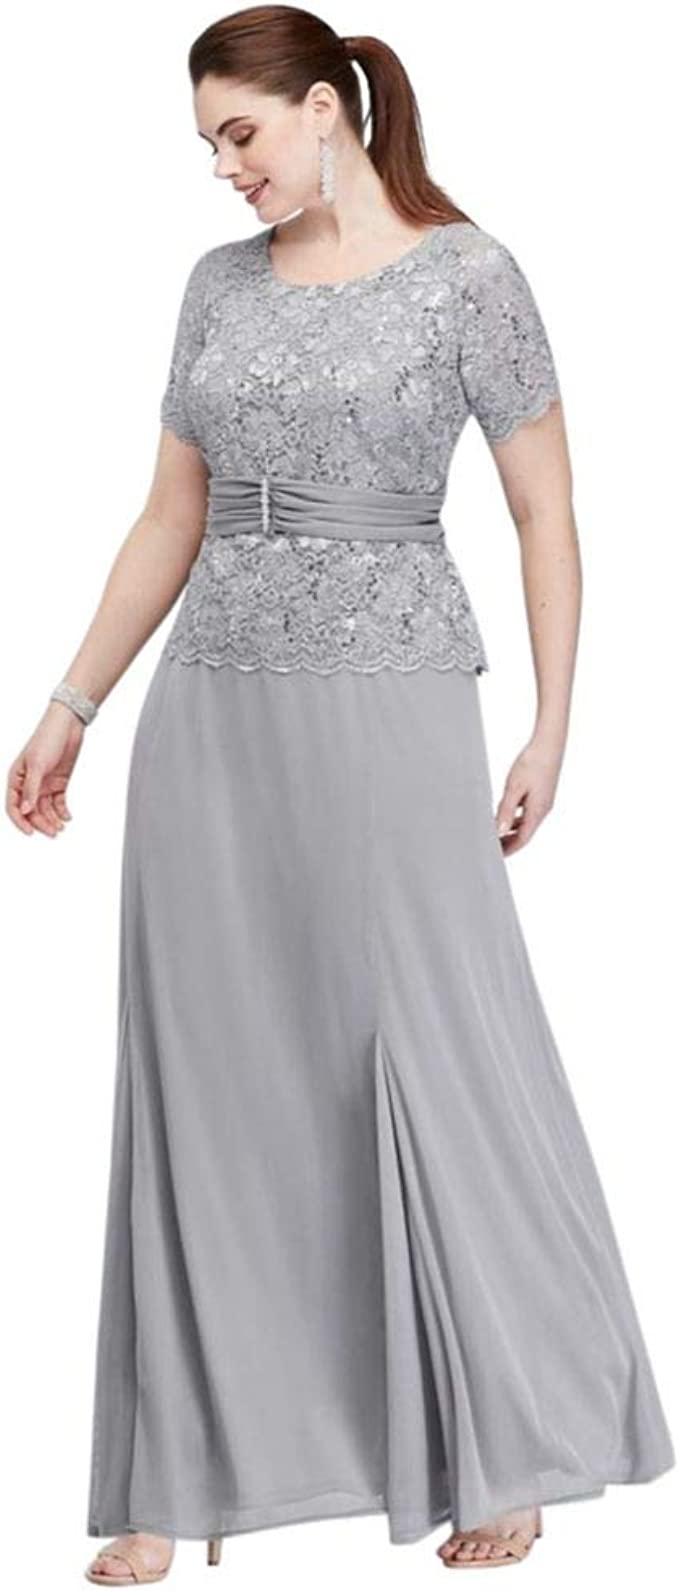 Chiffon Short-Sleeve Lace Plus Size Mother of Bride/Groom ...